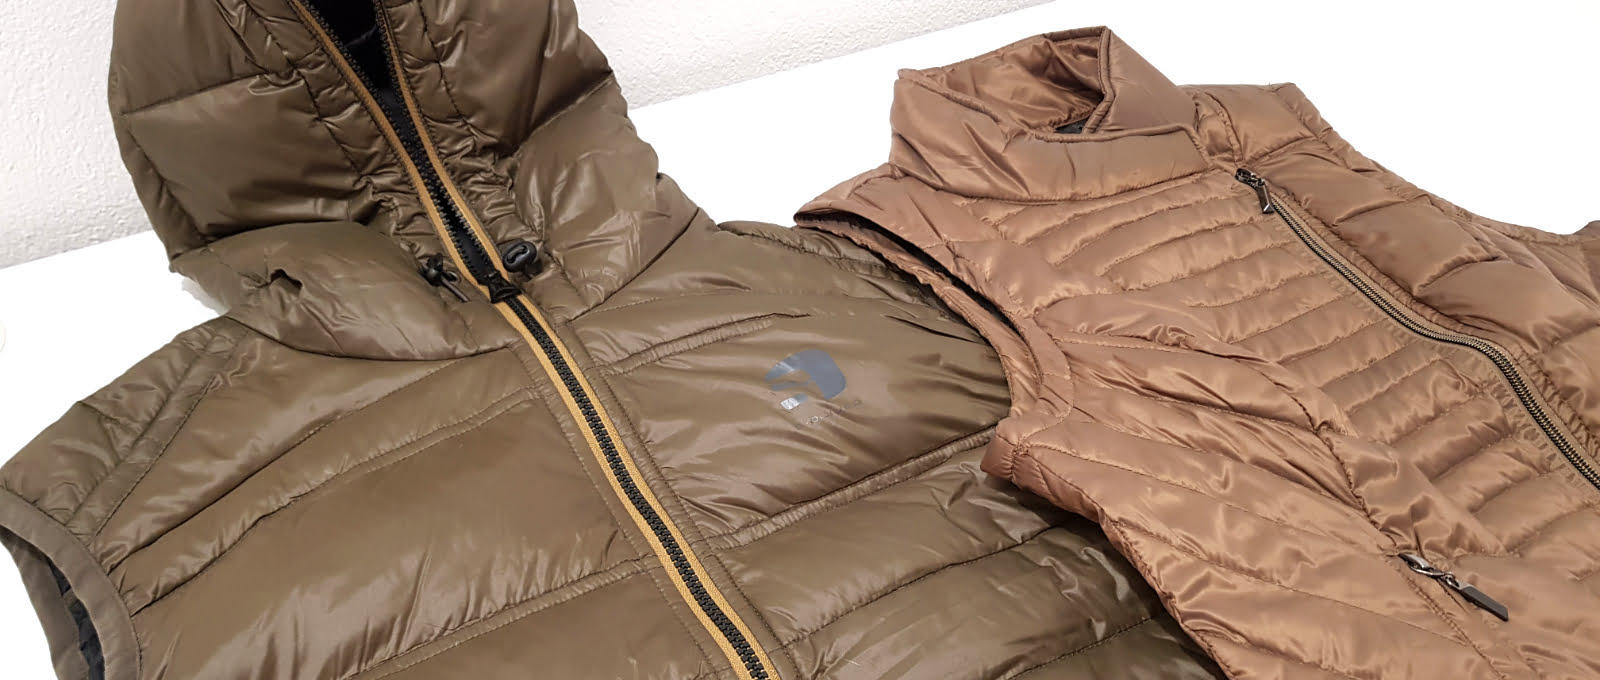 two heated vests - men's and women's